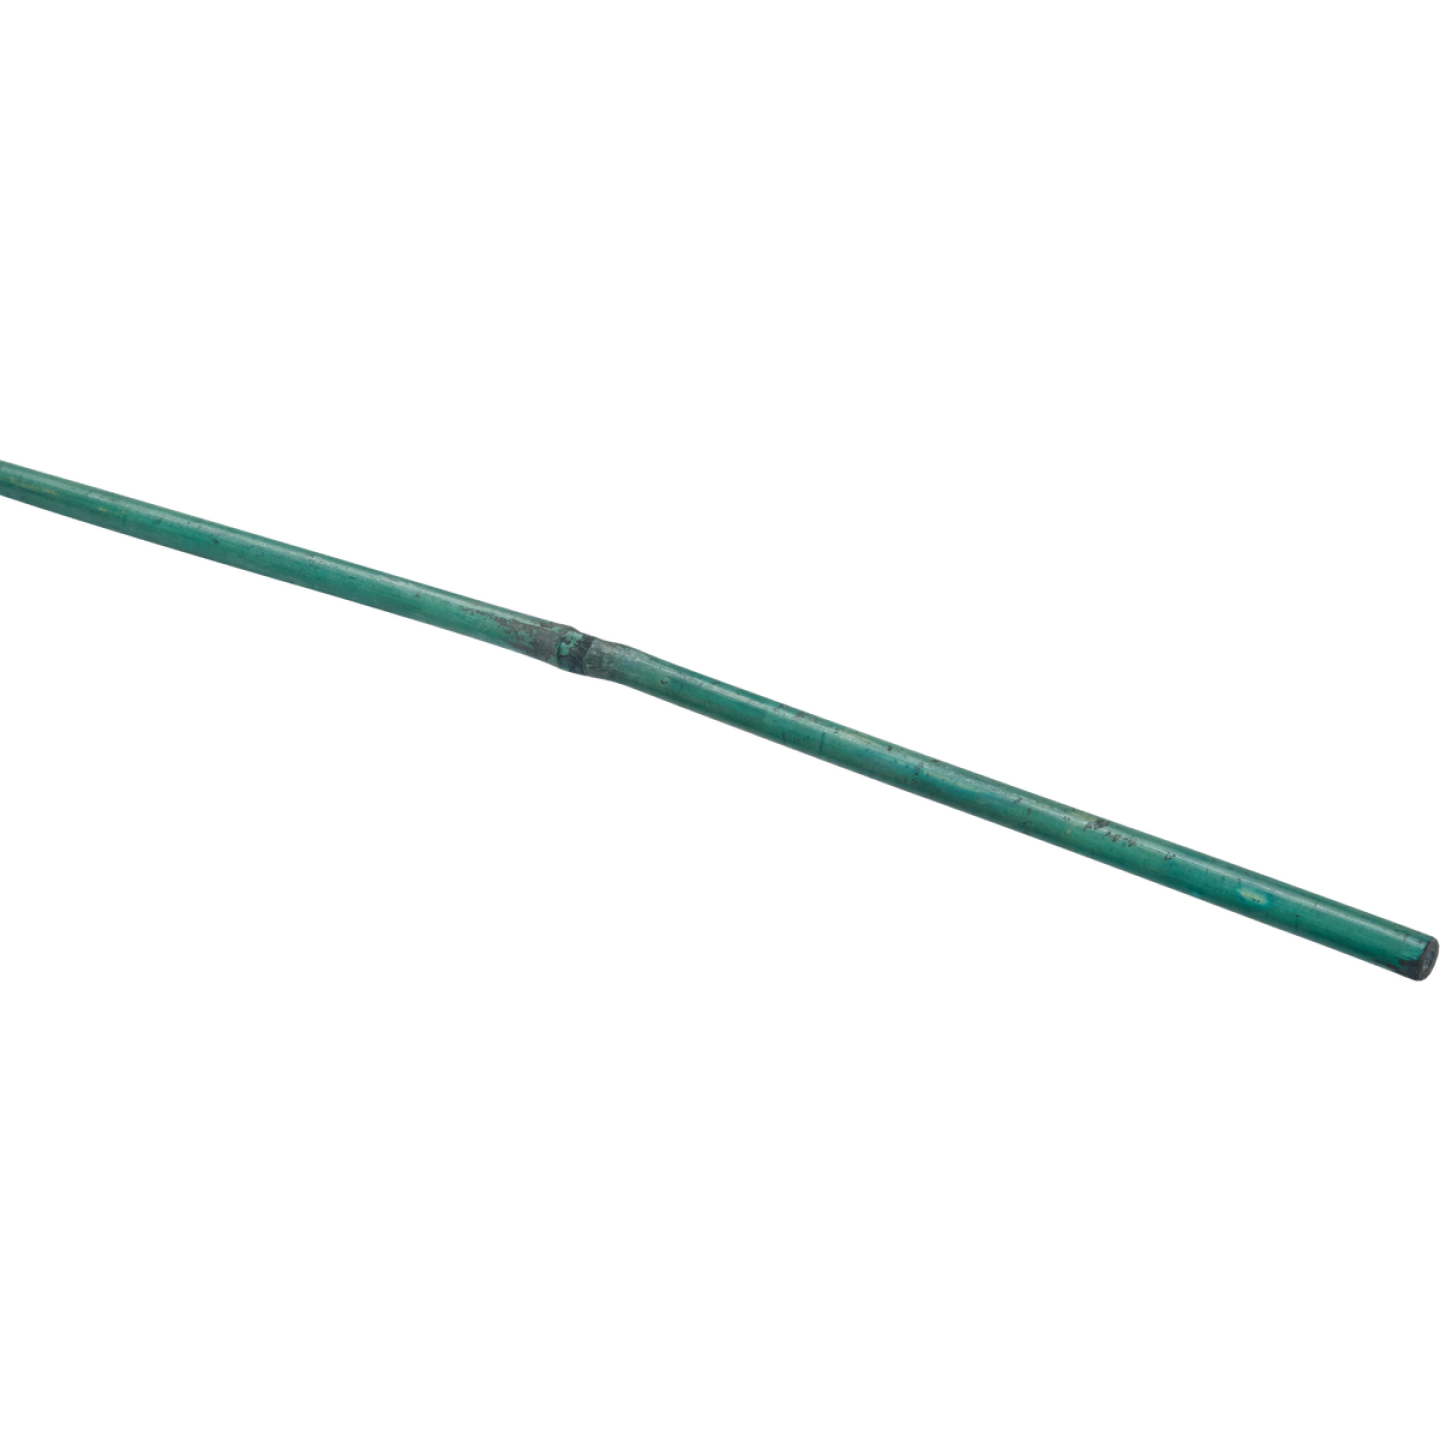 Bond 6 Ft. Green Bamboo Plant Stakes (6-Pack) Image 3